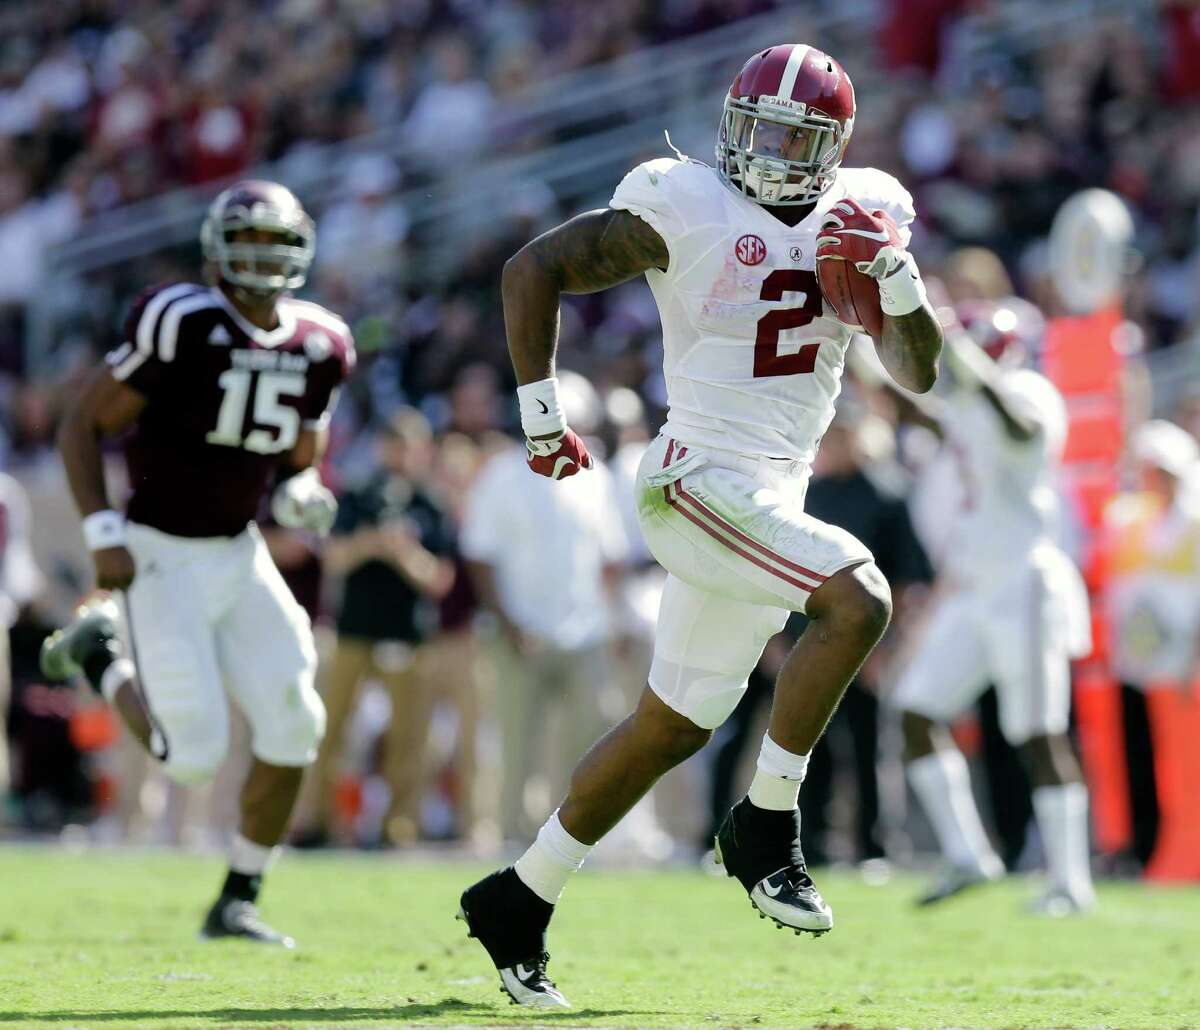 Alabama 's Derrick Henry (2) runs for a 59-yard touchdown against Texas A&M during the first half of an NCAA college football game, Saturday, Oct. 17, 2015, in College Station, Texas. (AP Photo/Eric Gay)